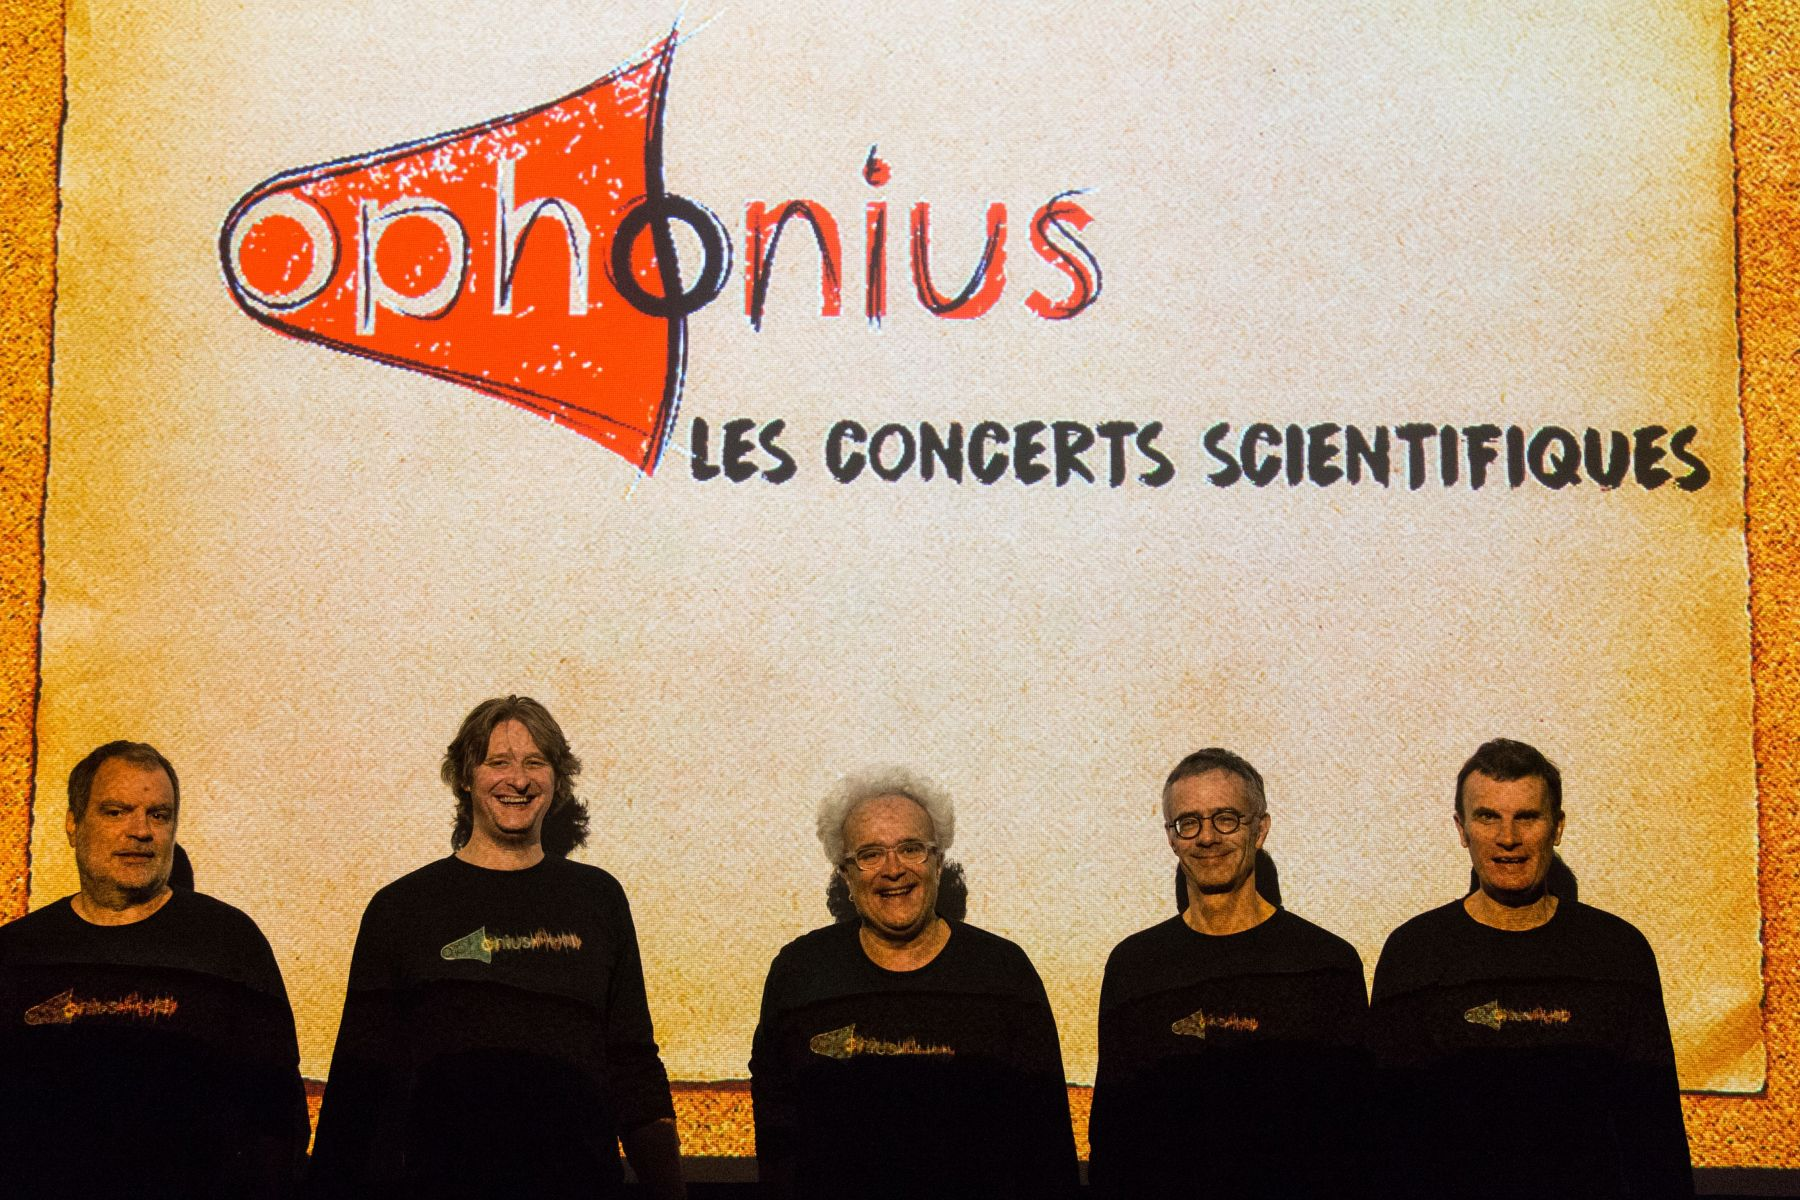 Concert-Scientifique-89-11-2018-128